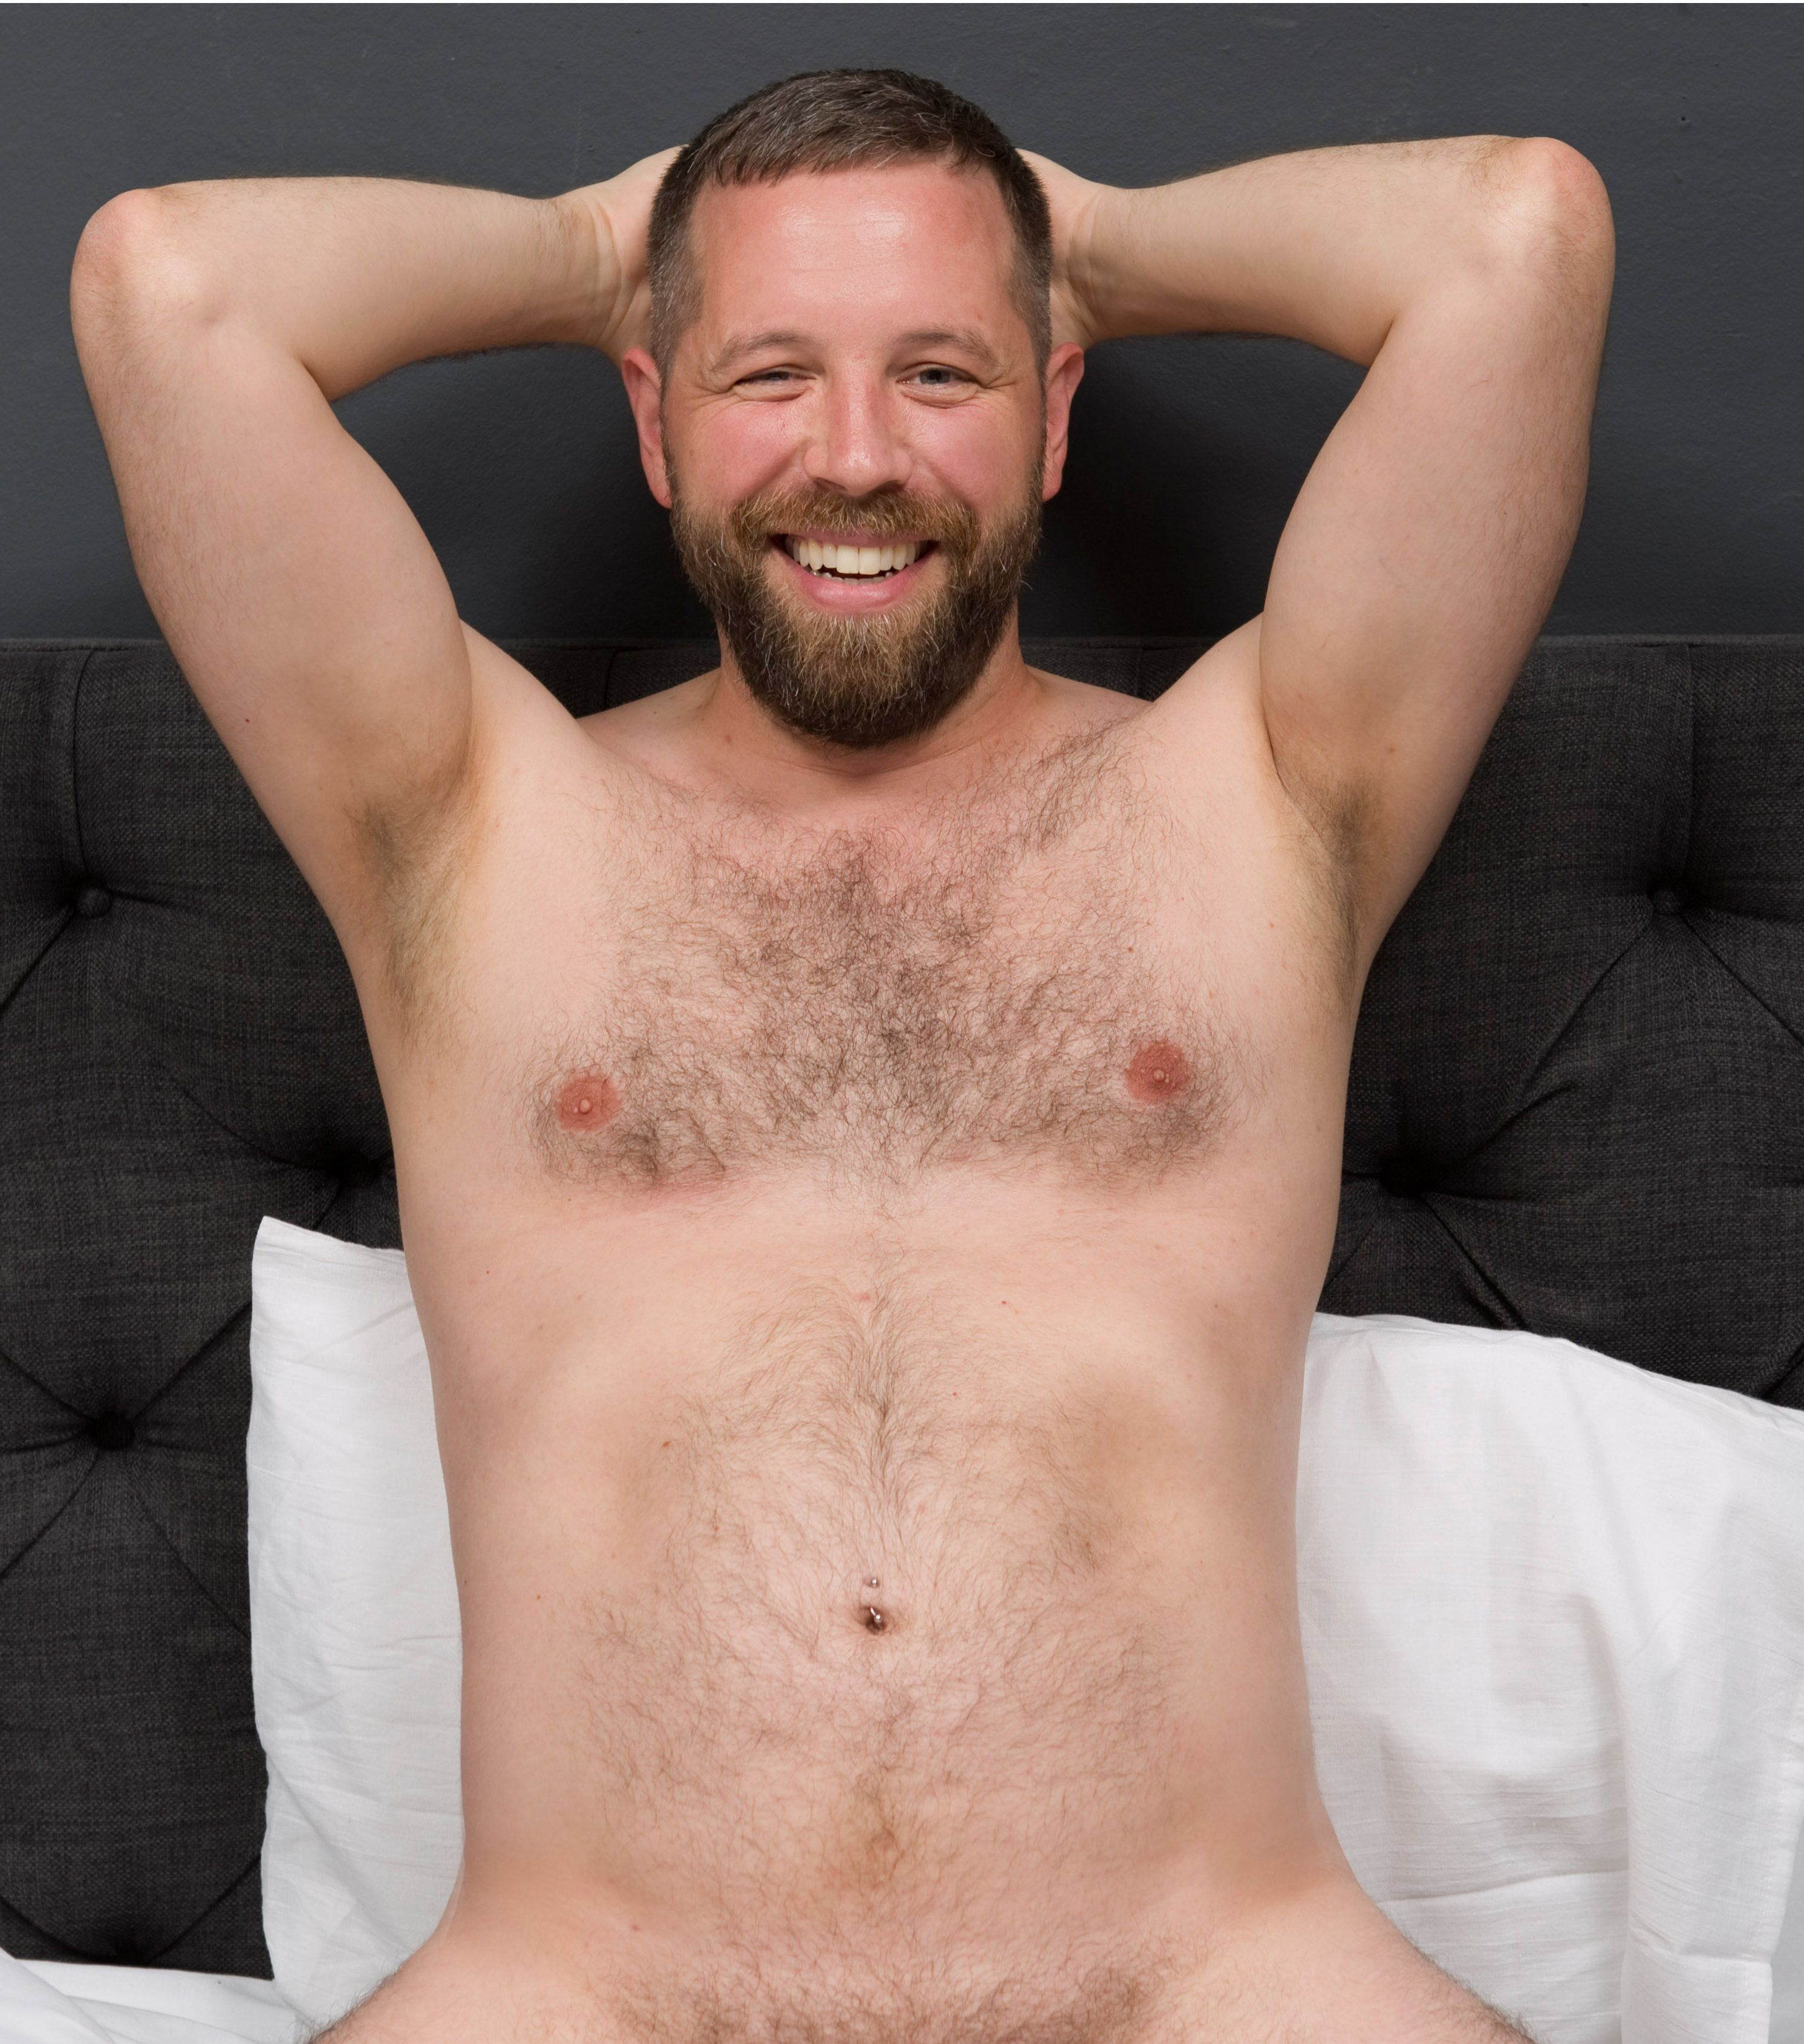 Not doubt Nude male calendar poses